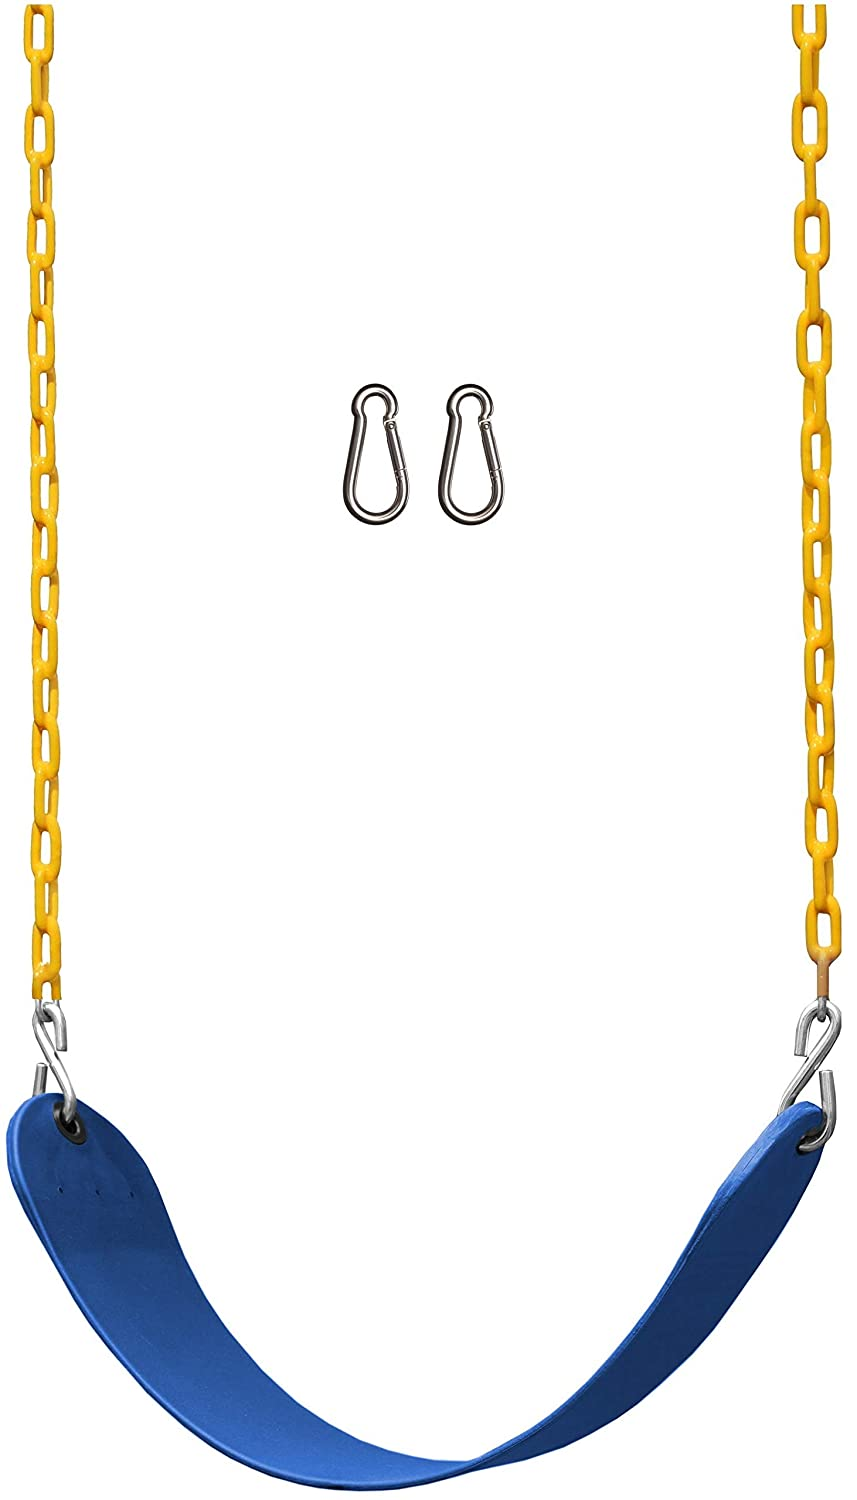 "Jungle Gym Kingdom Swing Seat Heavy Duty 66"" Chain Plastic Coated - Playground Swing Set Accessories Replacement (Blue)"